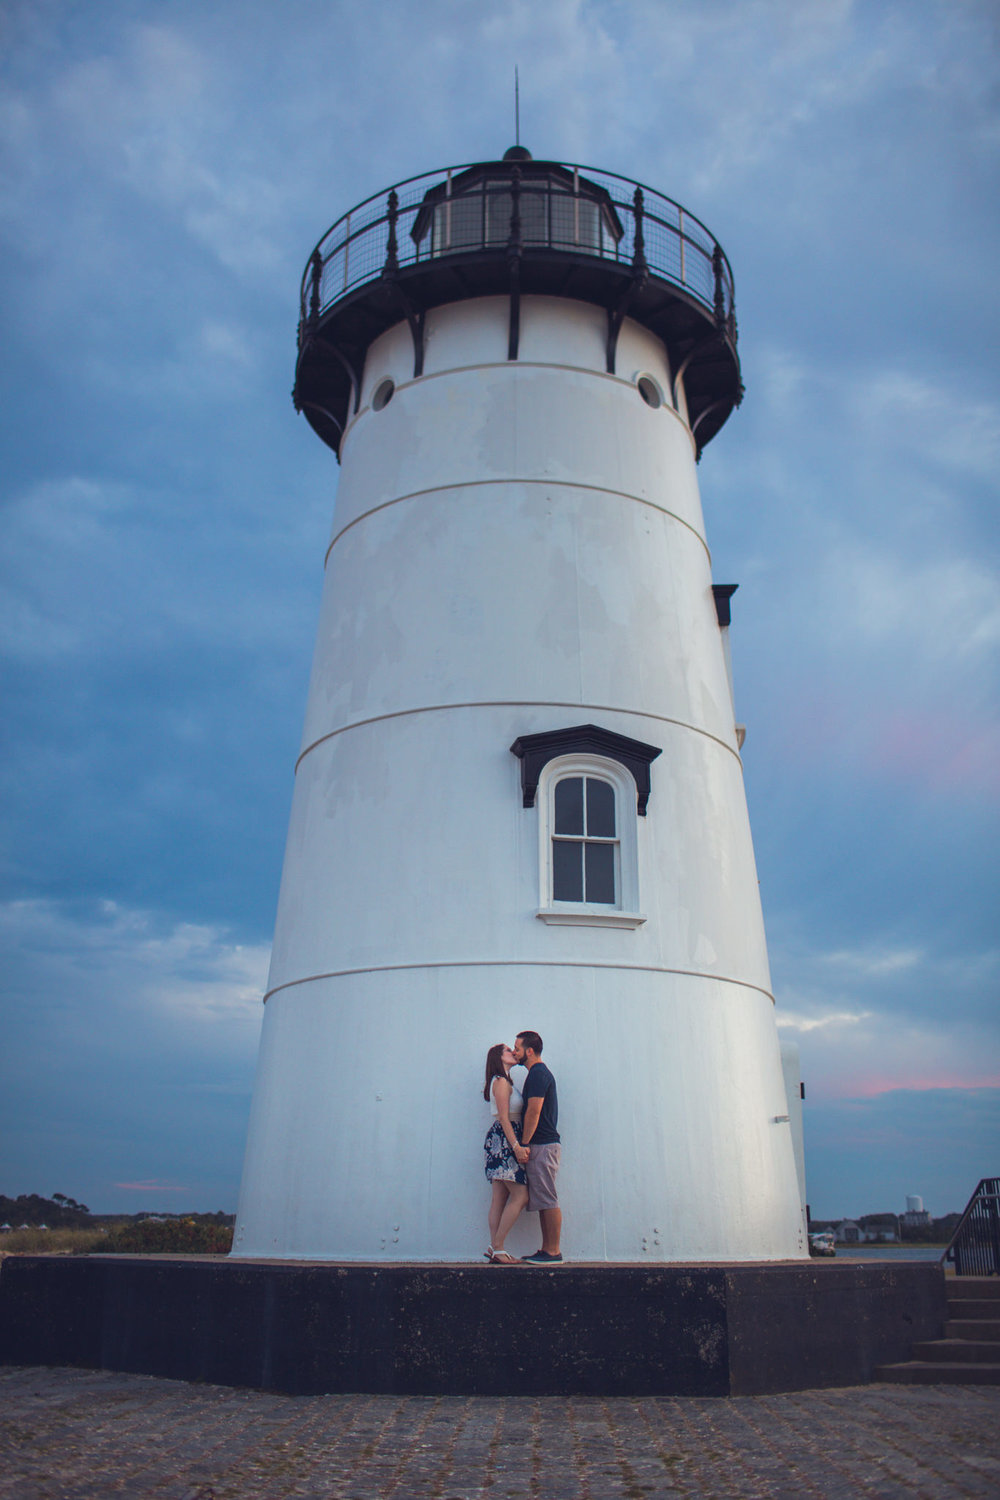 Jillian-rollins-photography-top100-capecodphotographer-maphotographer-wedding-photographer-newport-wedding-86.jpg